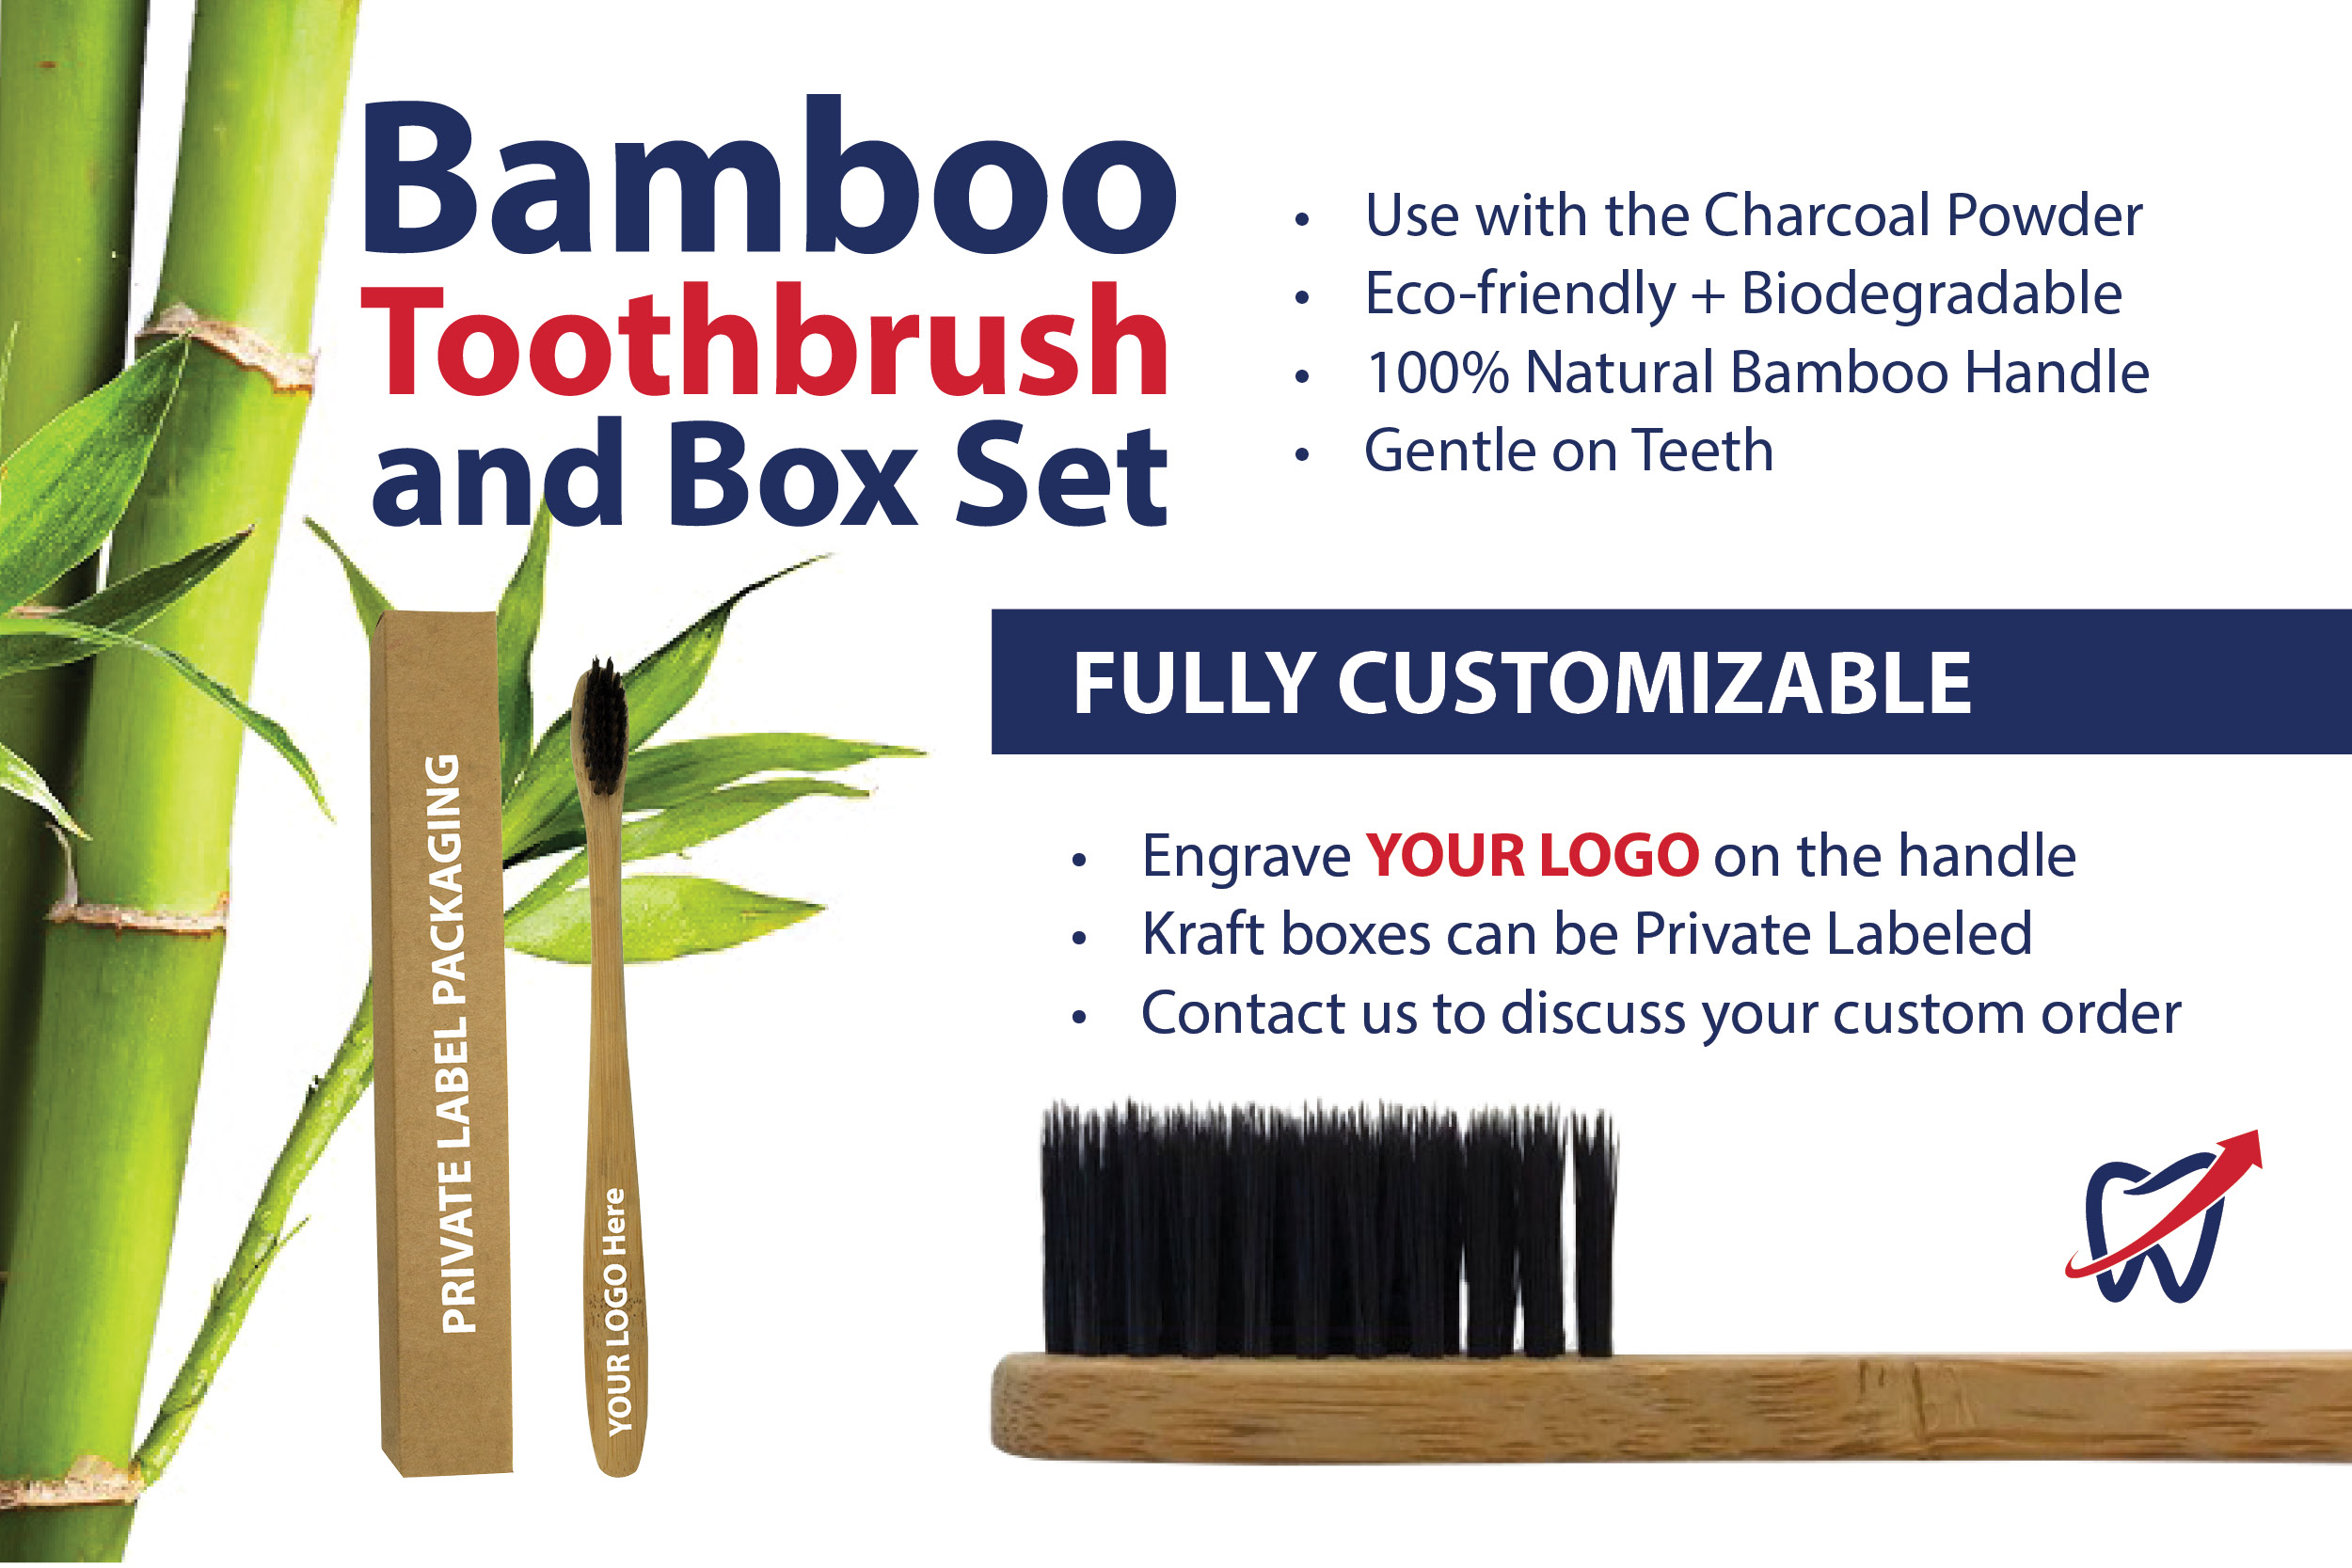 Bamboo Toothbrush with Box (Qty: 25)